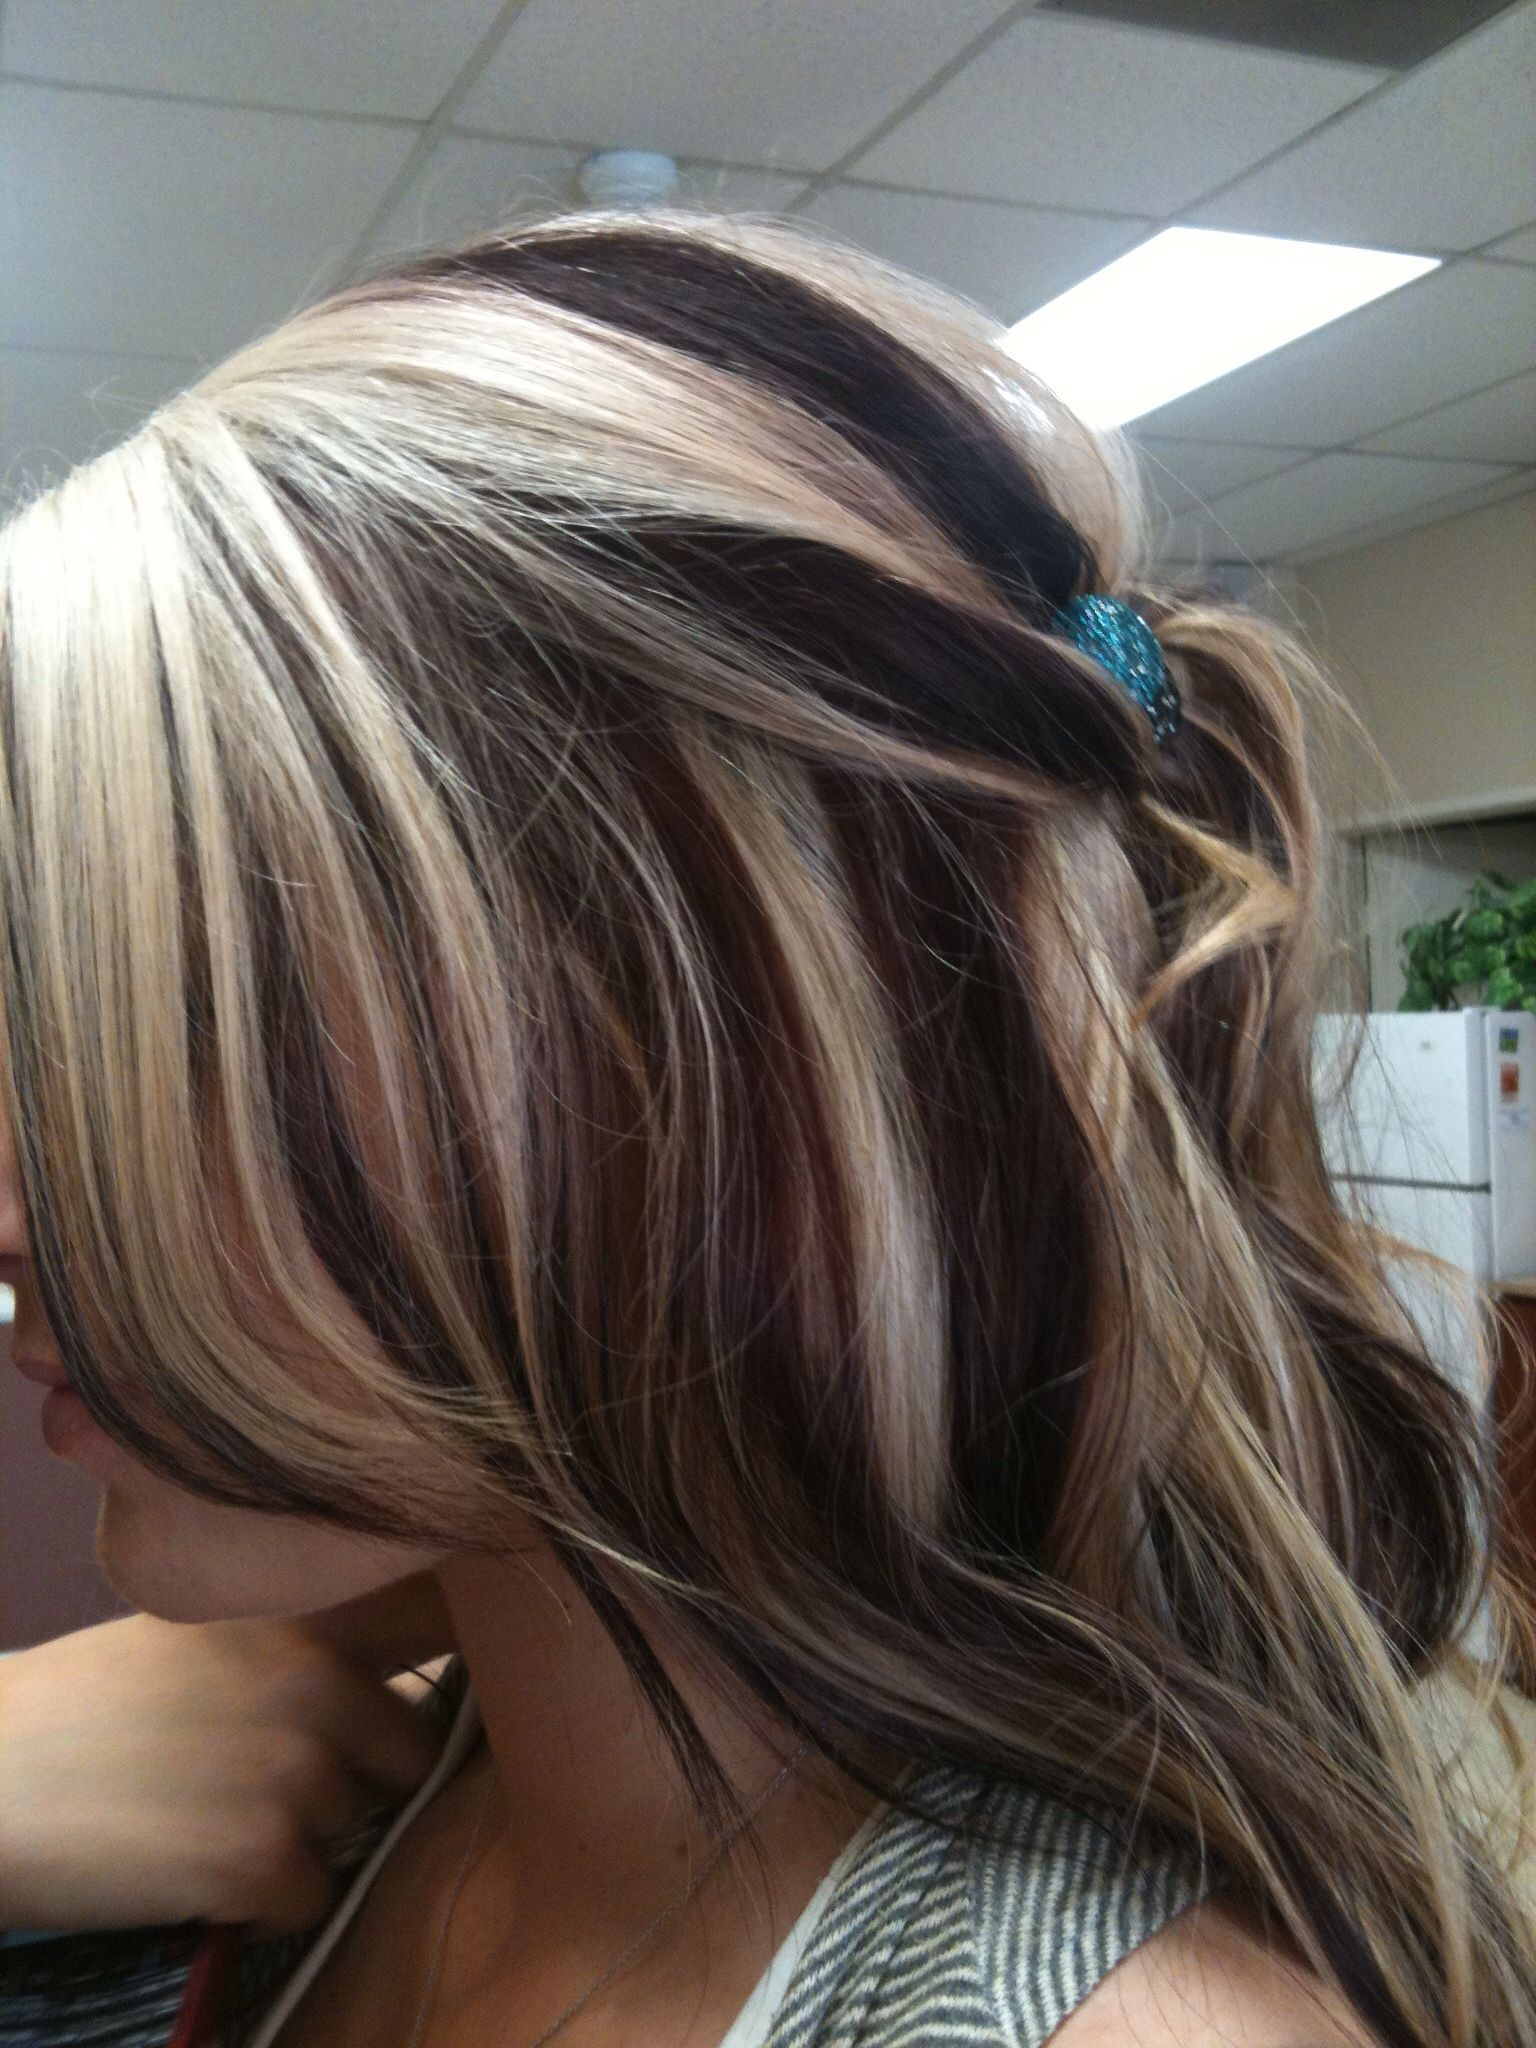 Pictures Of Dark Hair With Blonde Chunks